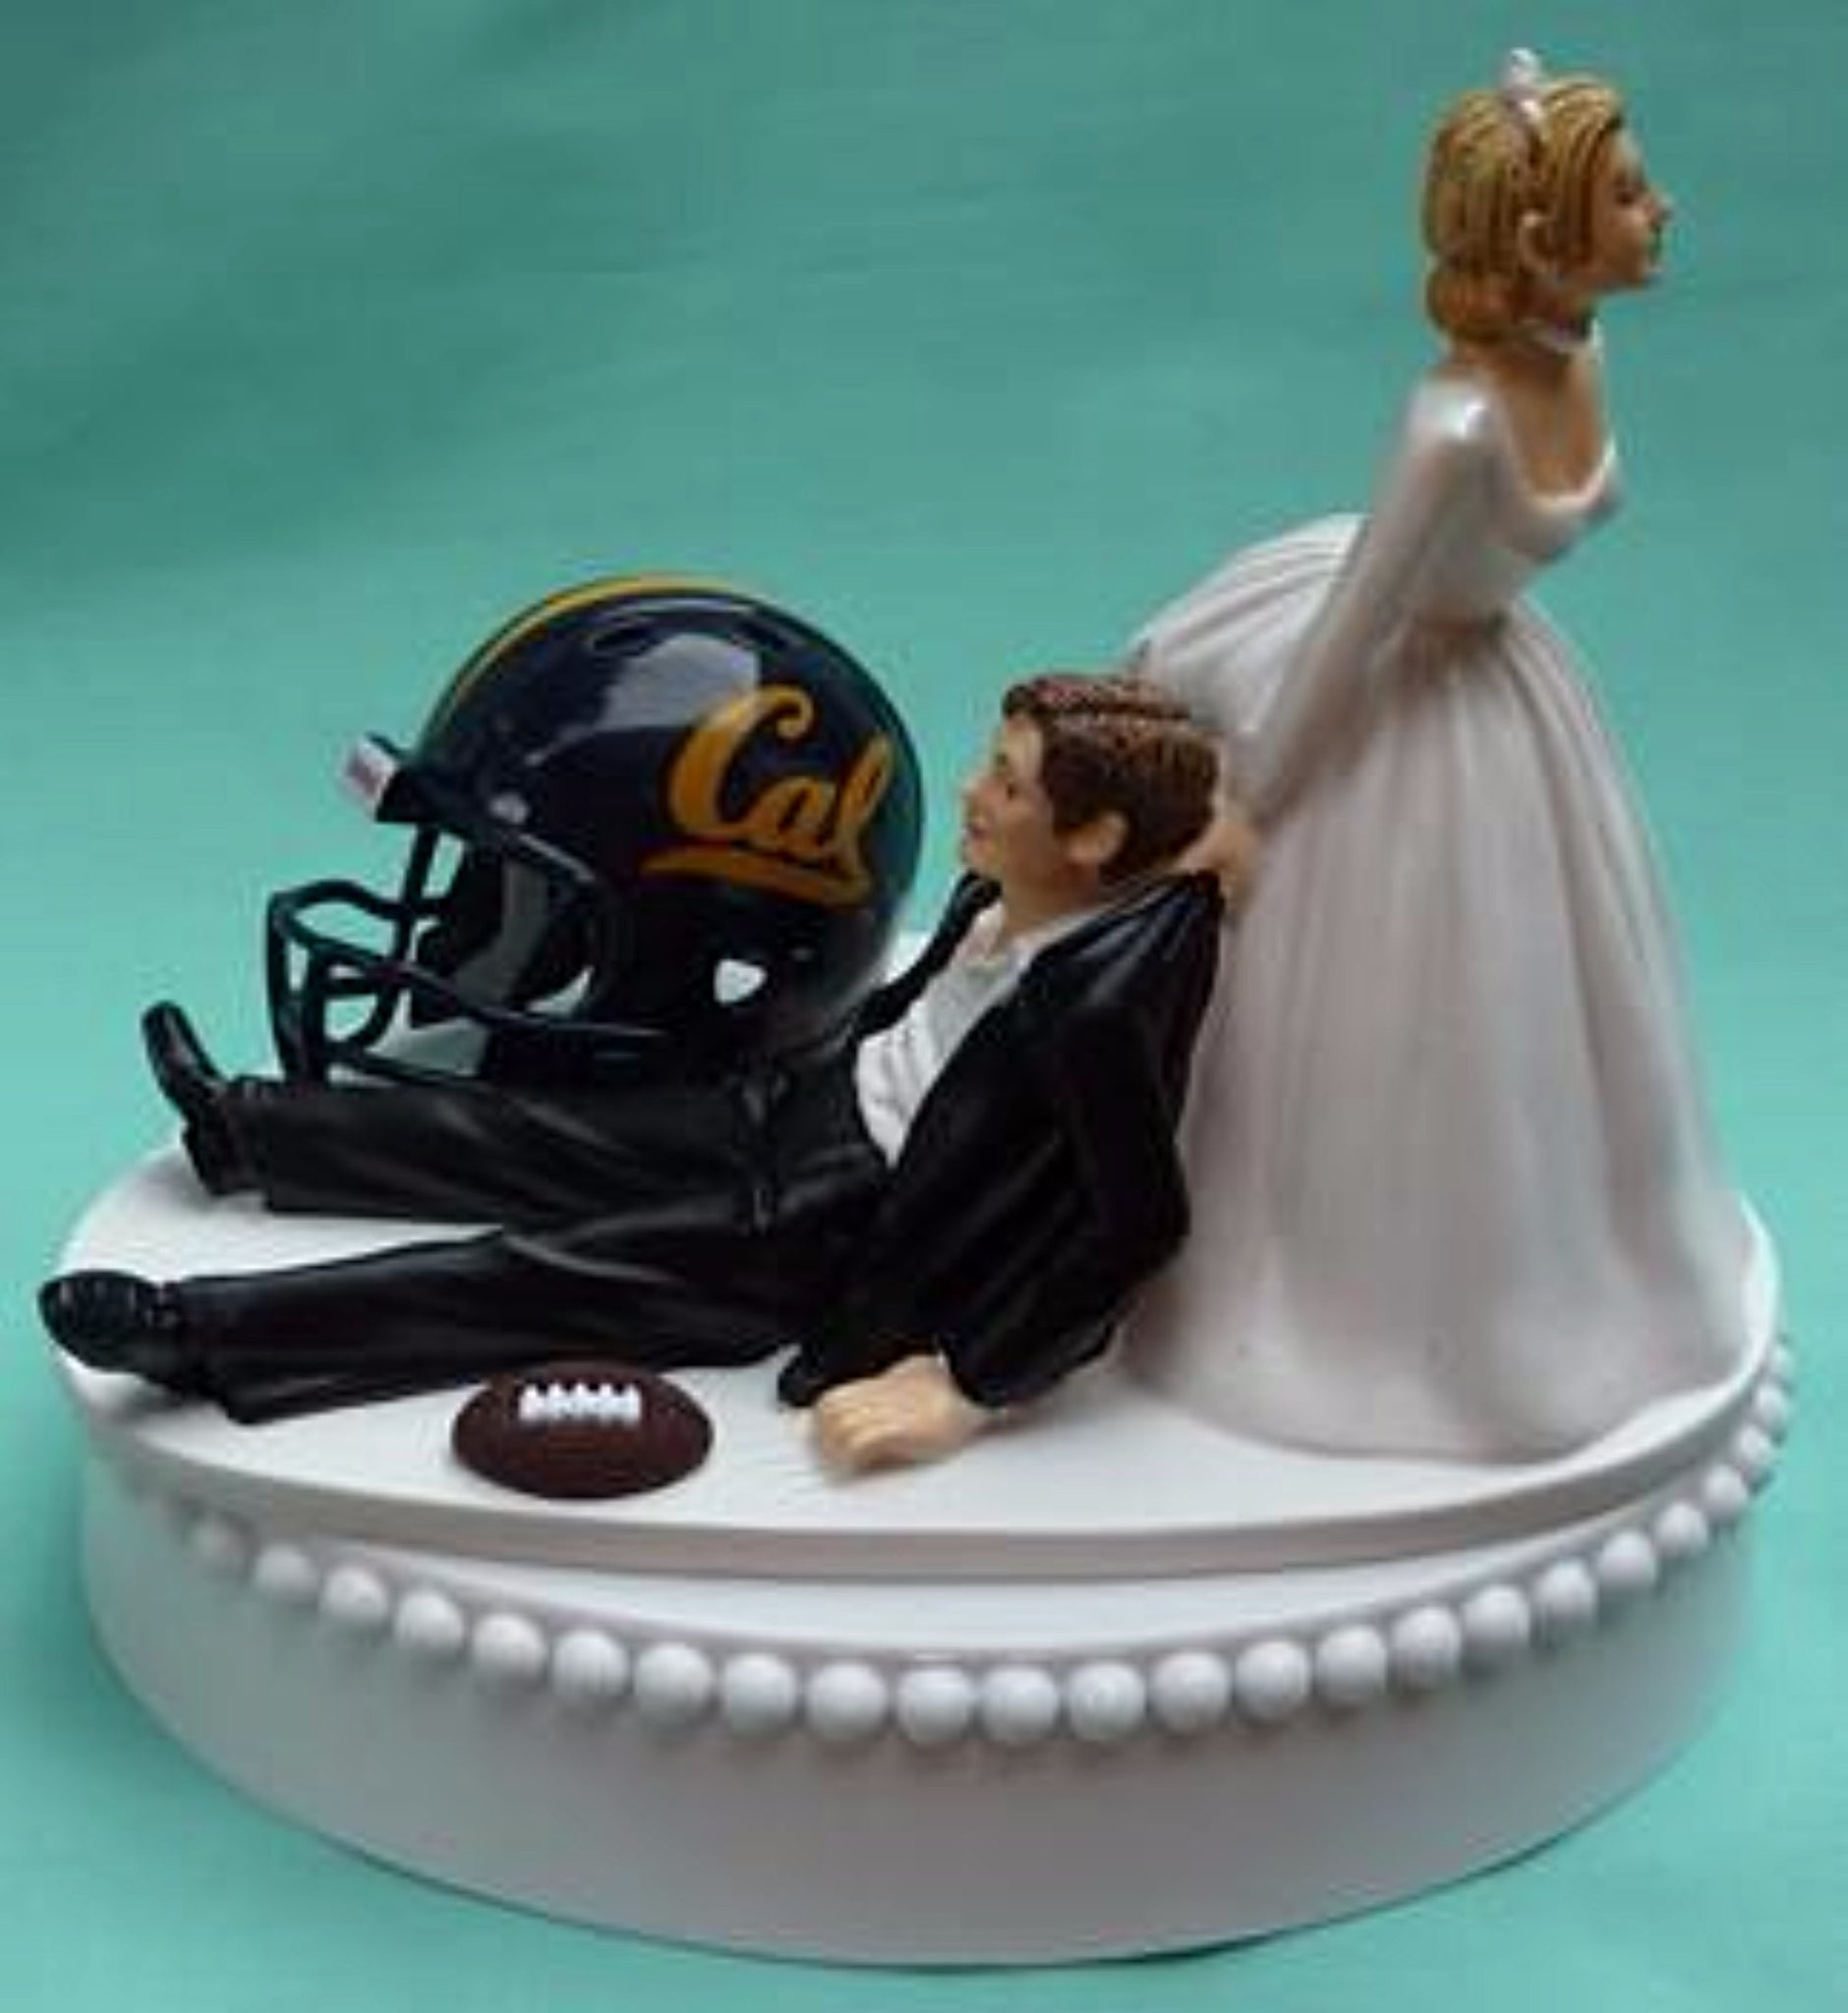 Cal Bears wedding cake topper University of California Berkeley UC Golden Bears football groom's cake top humorous bride dragging groom funny sports reception gift Fun Wedding Things